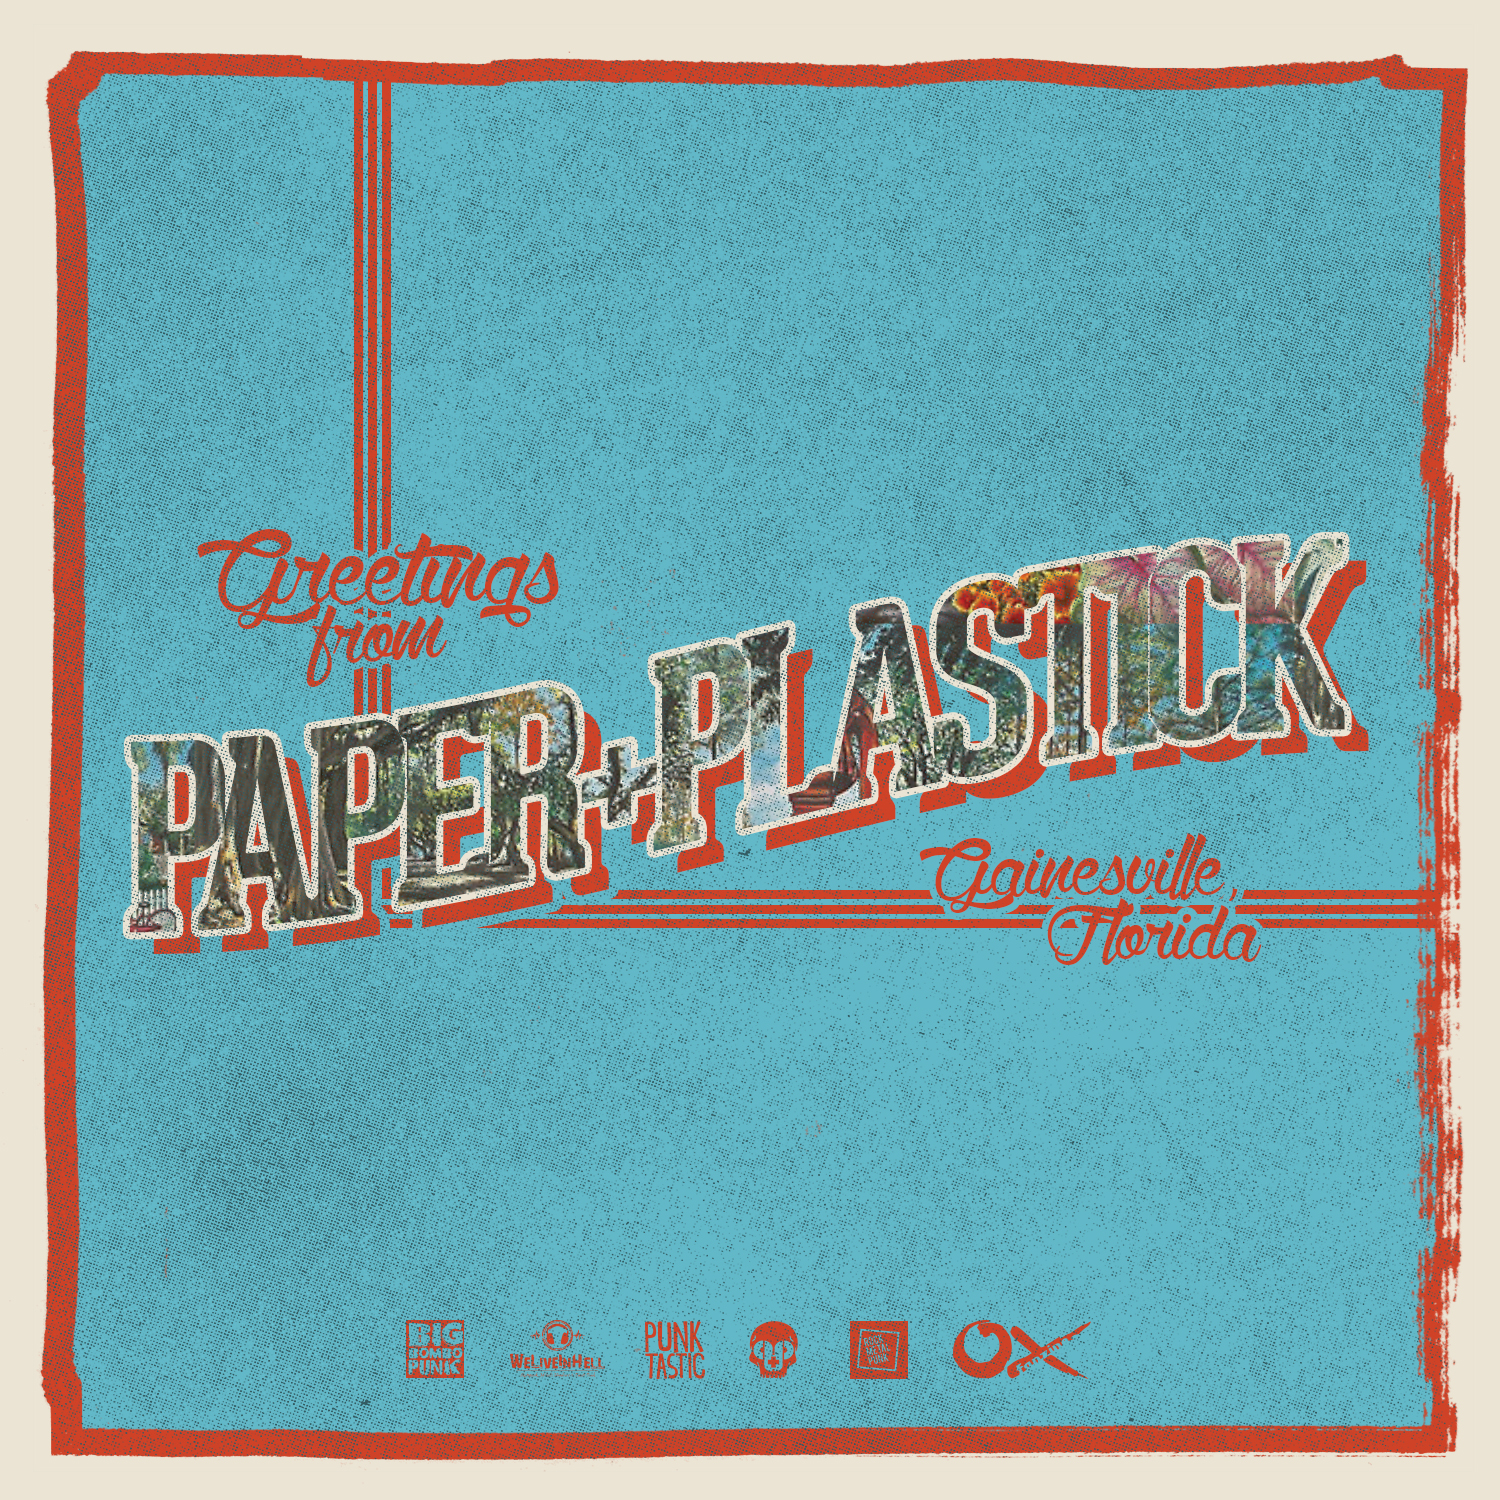 Greetings From... Paper + Plastick Compilation